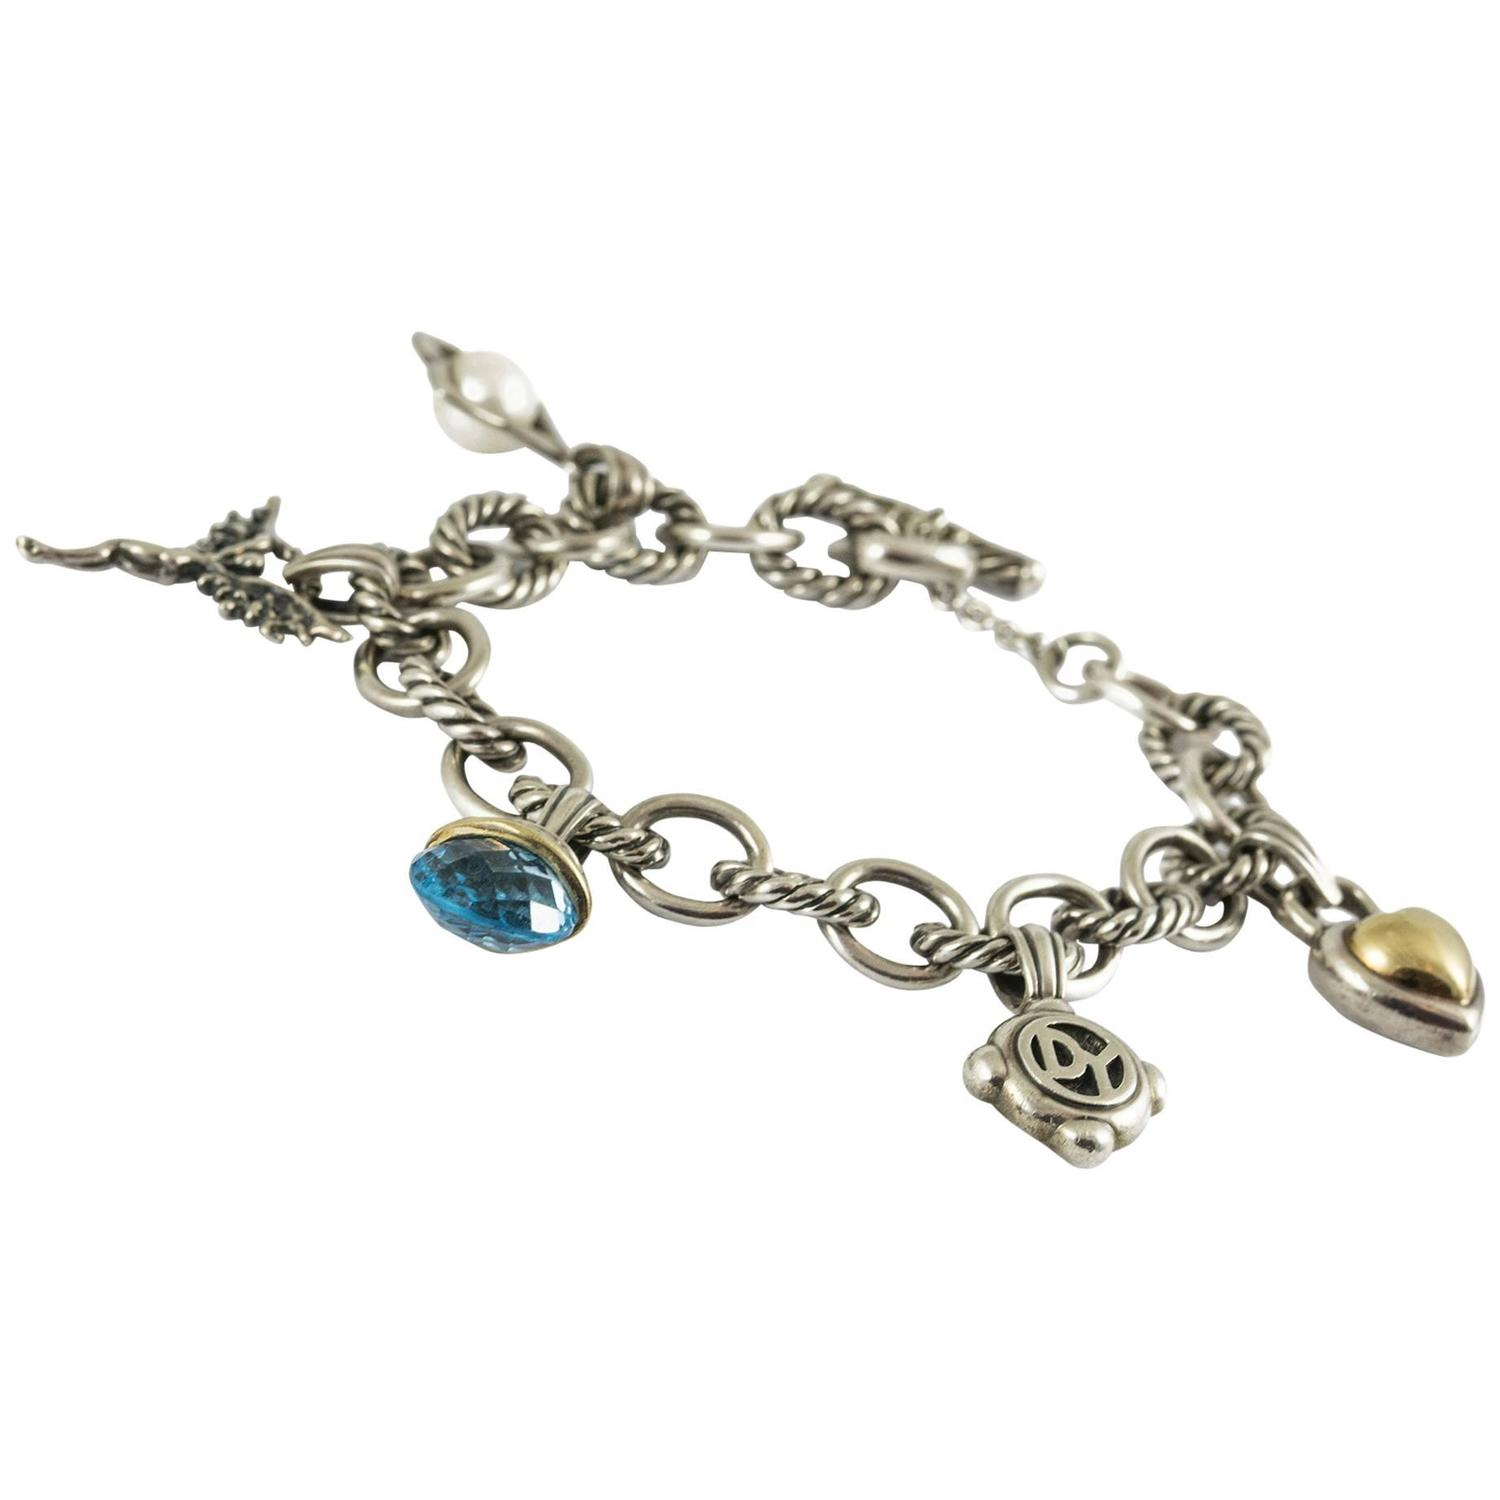 David Yurman Charm Bracelet: David Yurman Silver Gold Charm Bracelet For Sale At 1stdibs